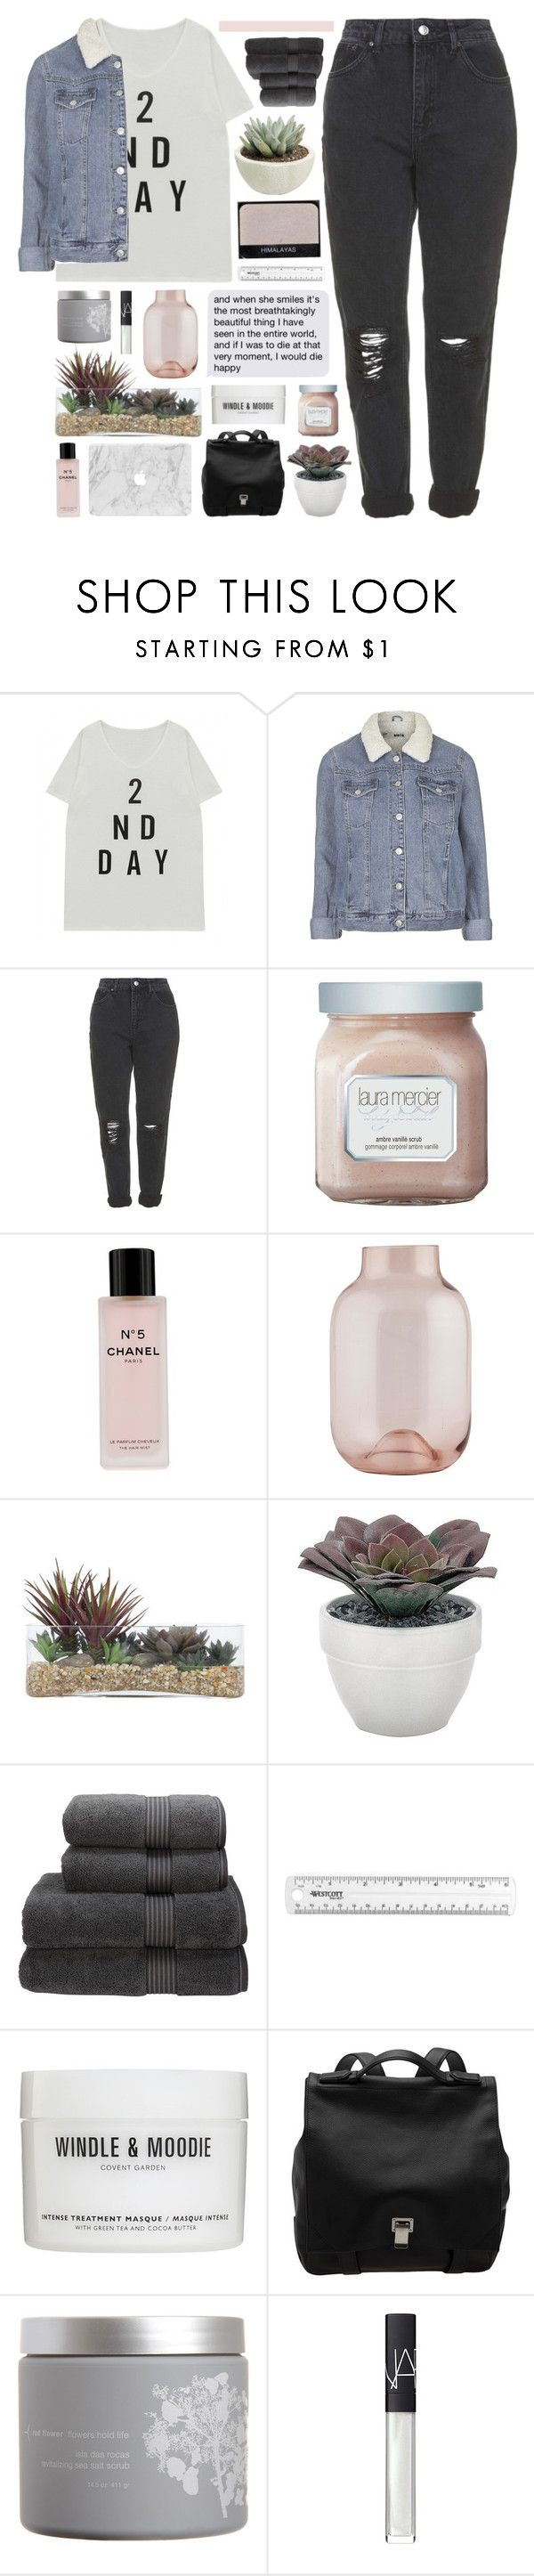 """if you love me, why'd you let me go?"" by other-flying ❤ liked on Polyvore featuring Topshop, Laura Mercier, Chanel, House Doctor, NARS Cosmetics, Lux-Art Silks, Torre & Tagus, Christy, Proenza Schouler and red flower"